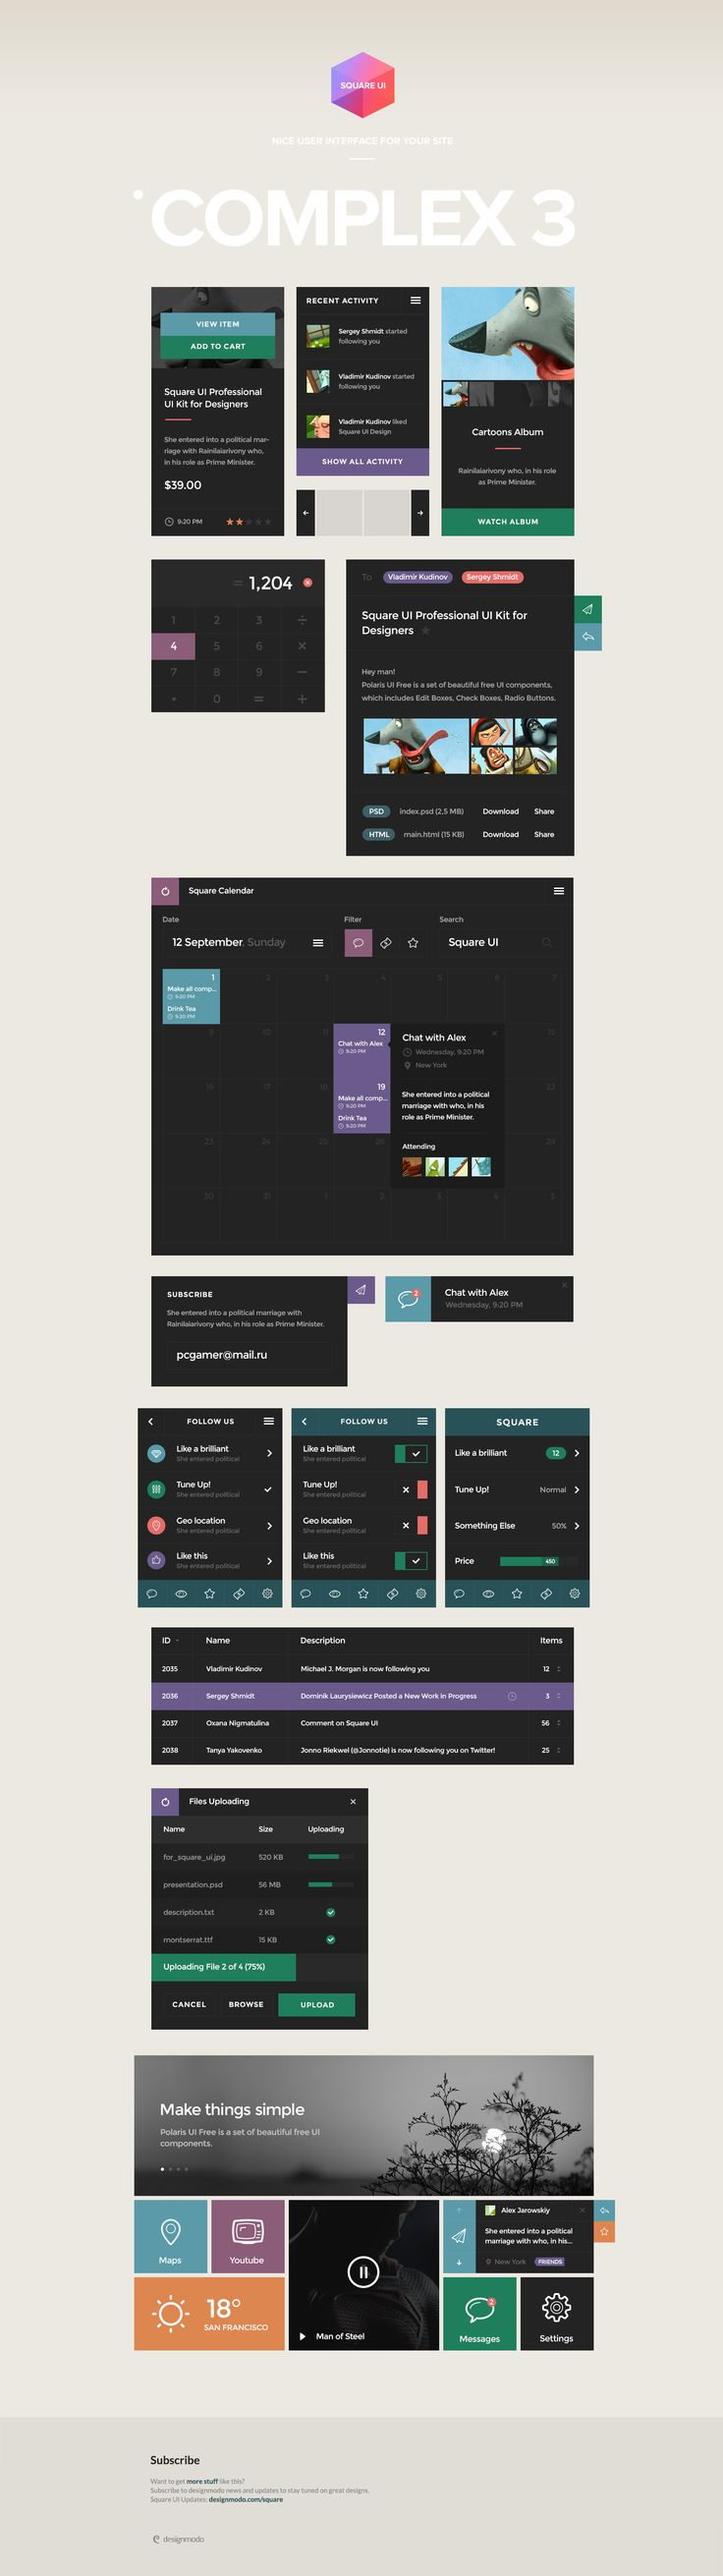 Square UI - Set of beautiful components featuring the flat design trend